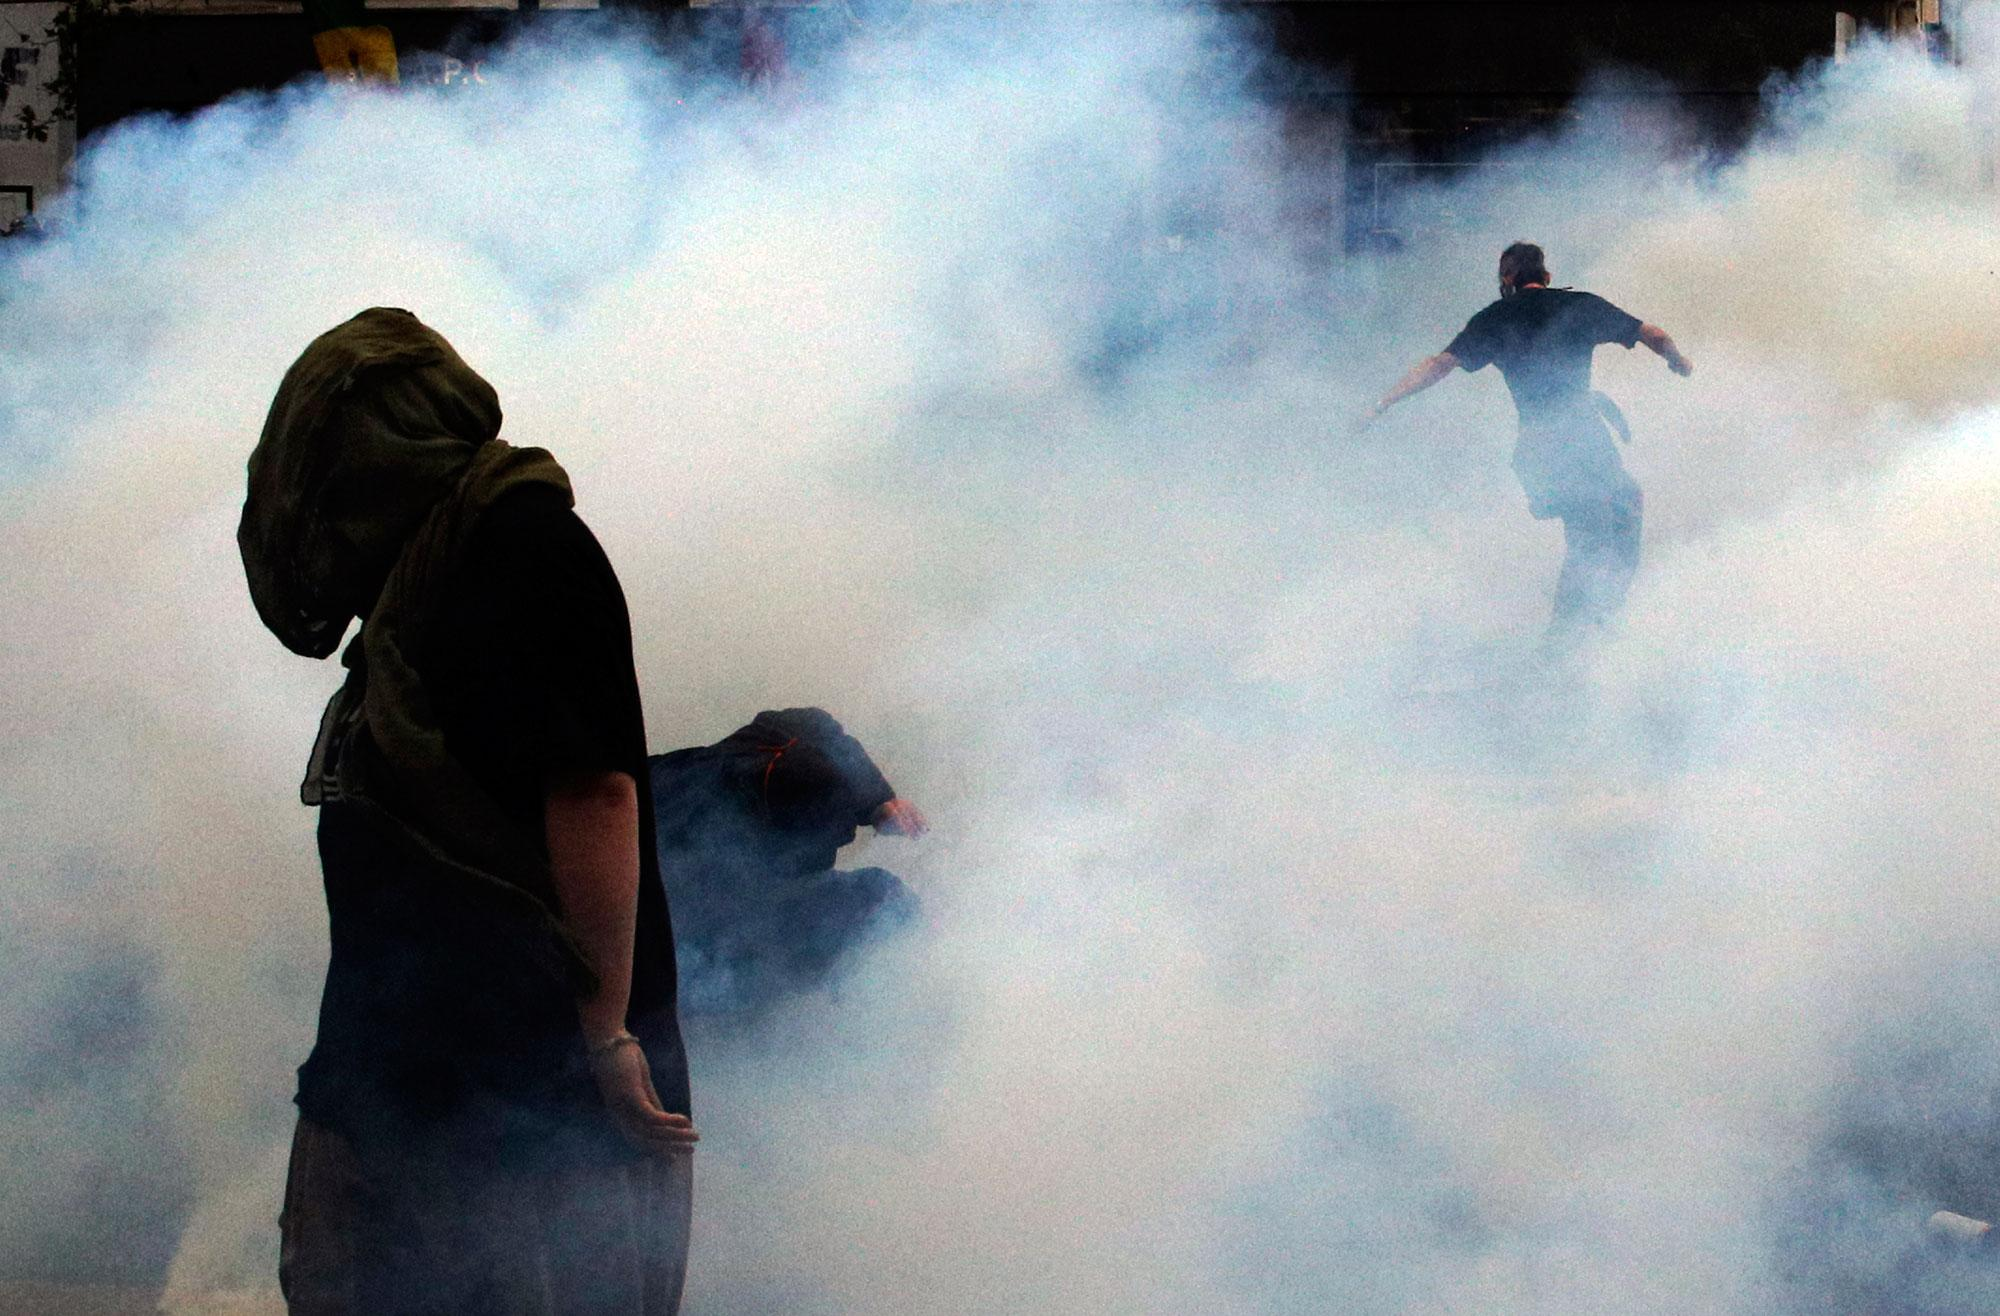 <p>Demonstrators are engulfed in tear gas smoke during scuffles with riot police following a protest against a labor law, in Paris, France, Thursday, Sept. 15, 2016. With strikes and protests, French unions are staging a last-ditch bid to dismantle a labor law that weakens their powers and worker protections. (AP Photo/Christophe Ena) </p>